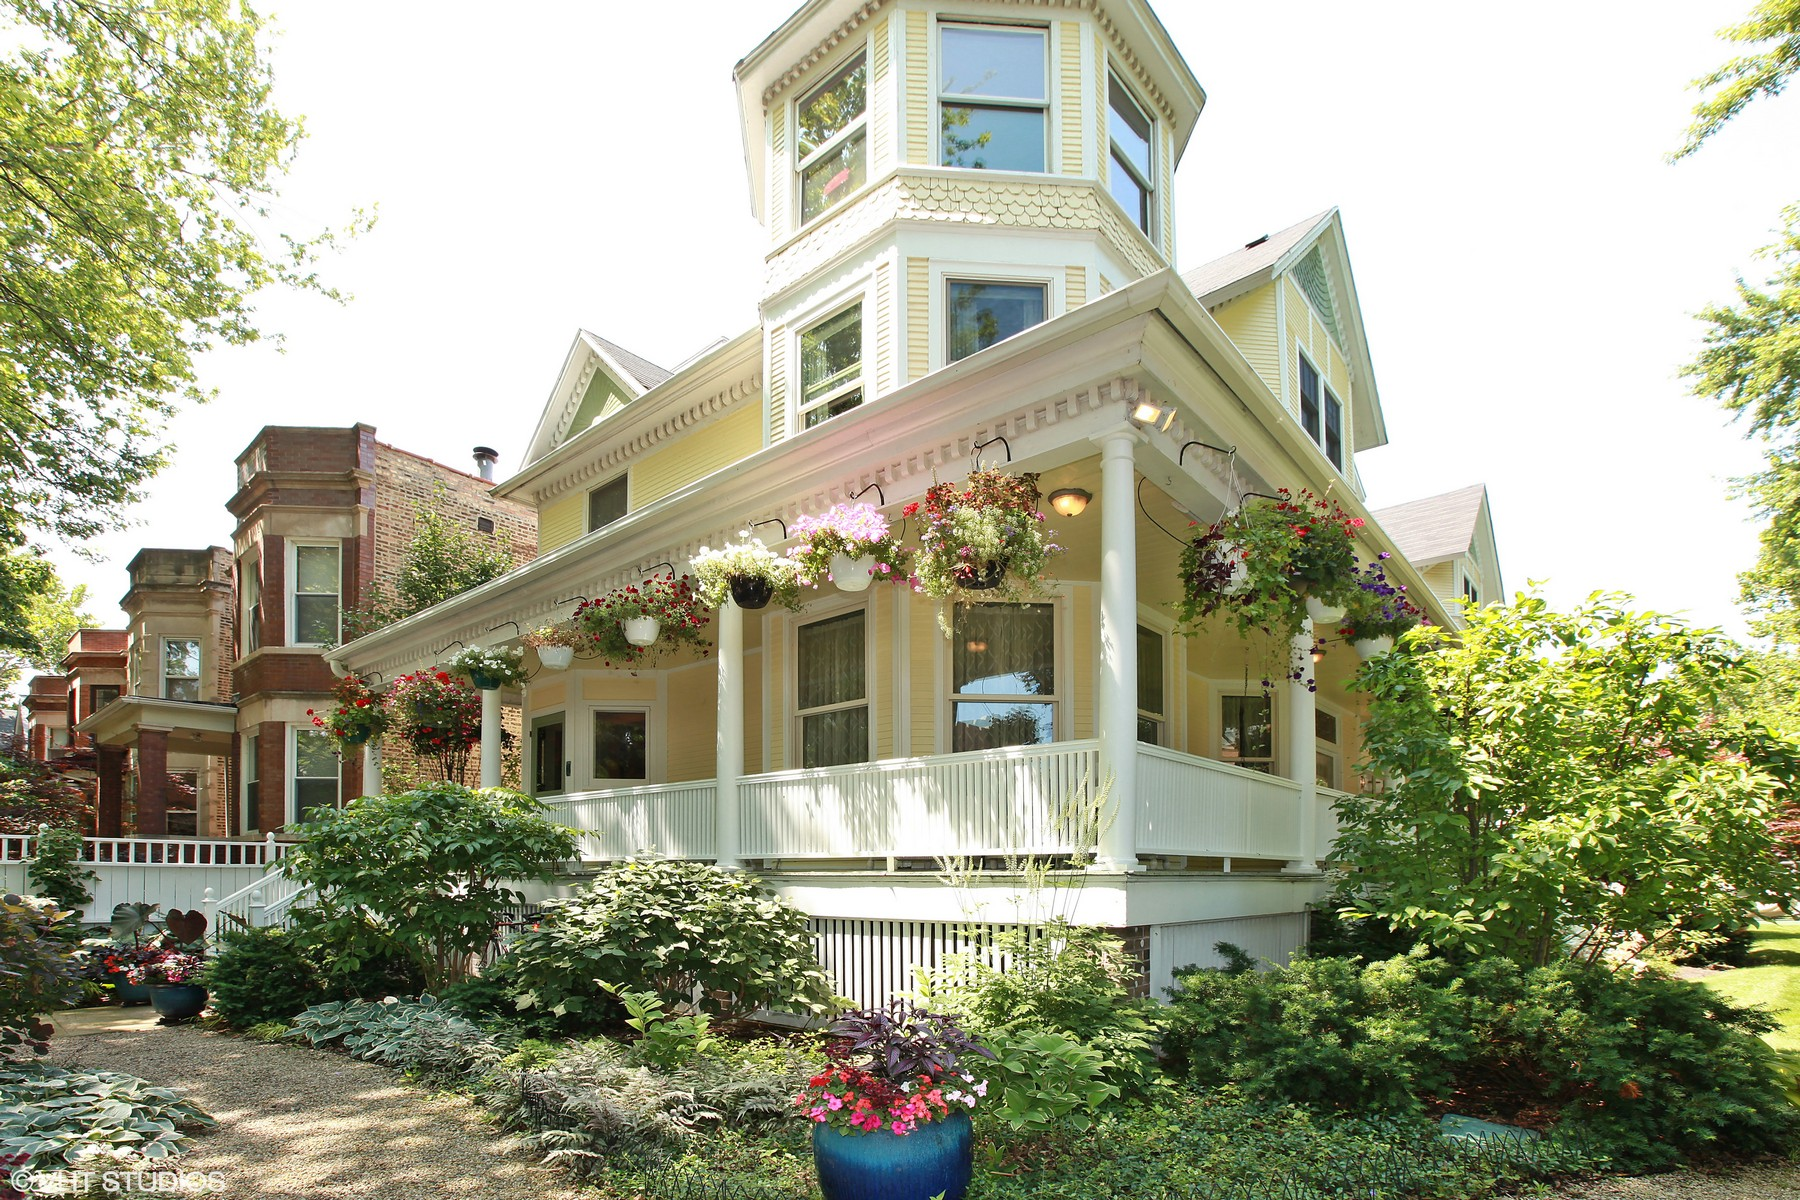 独户住宅 为 销售 在 One of a Kind Lakeview Victorian Masterpiece! 1904 W Patterson Avenue, Lakeview, 芝加哥, 伊利诺斯州, 60613 美国